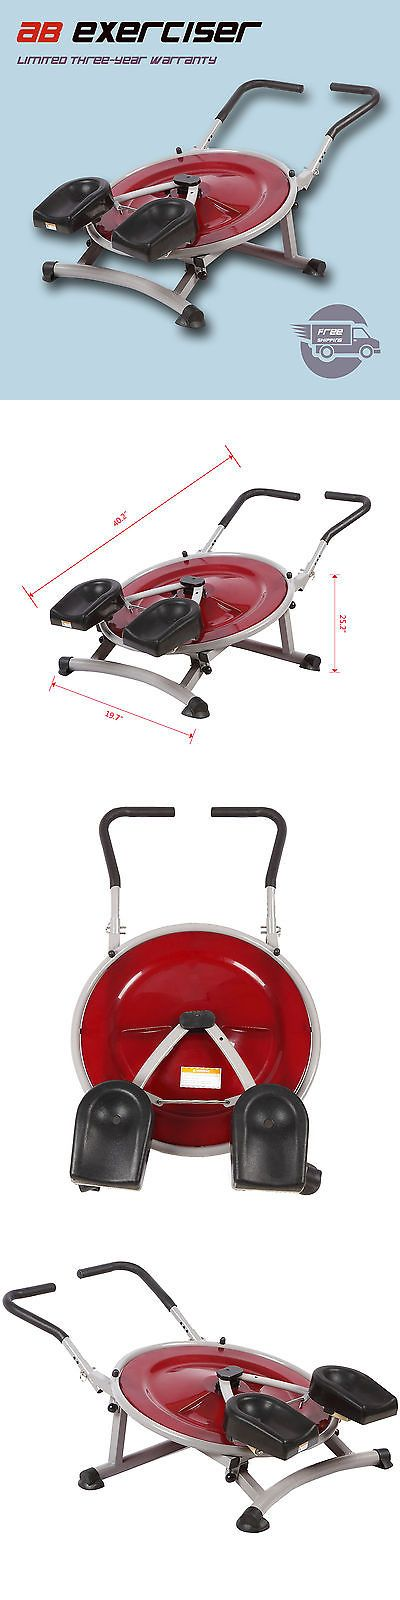 Abdominal Exercisers 15274: Ab Circle Pro Abs Exercise Machine Workout Equipment Abdominal Fitness Home Gym BUY IT NOW ONLY: $50.99